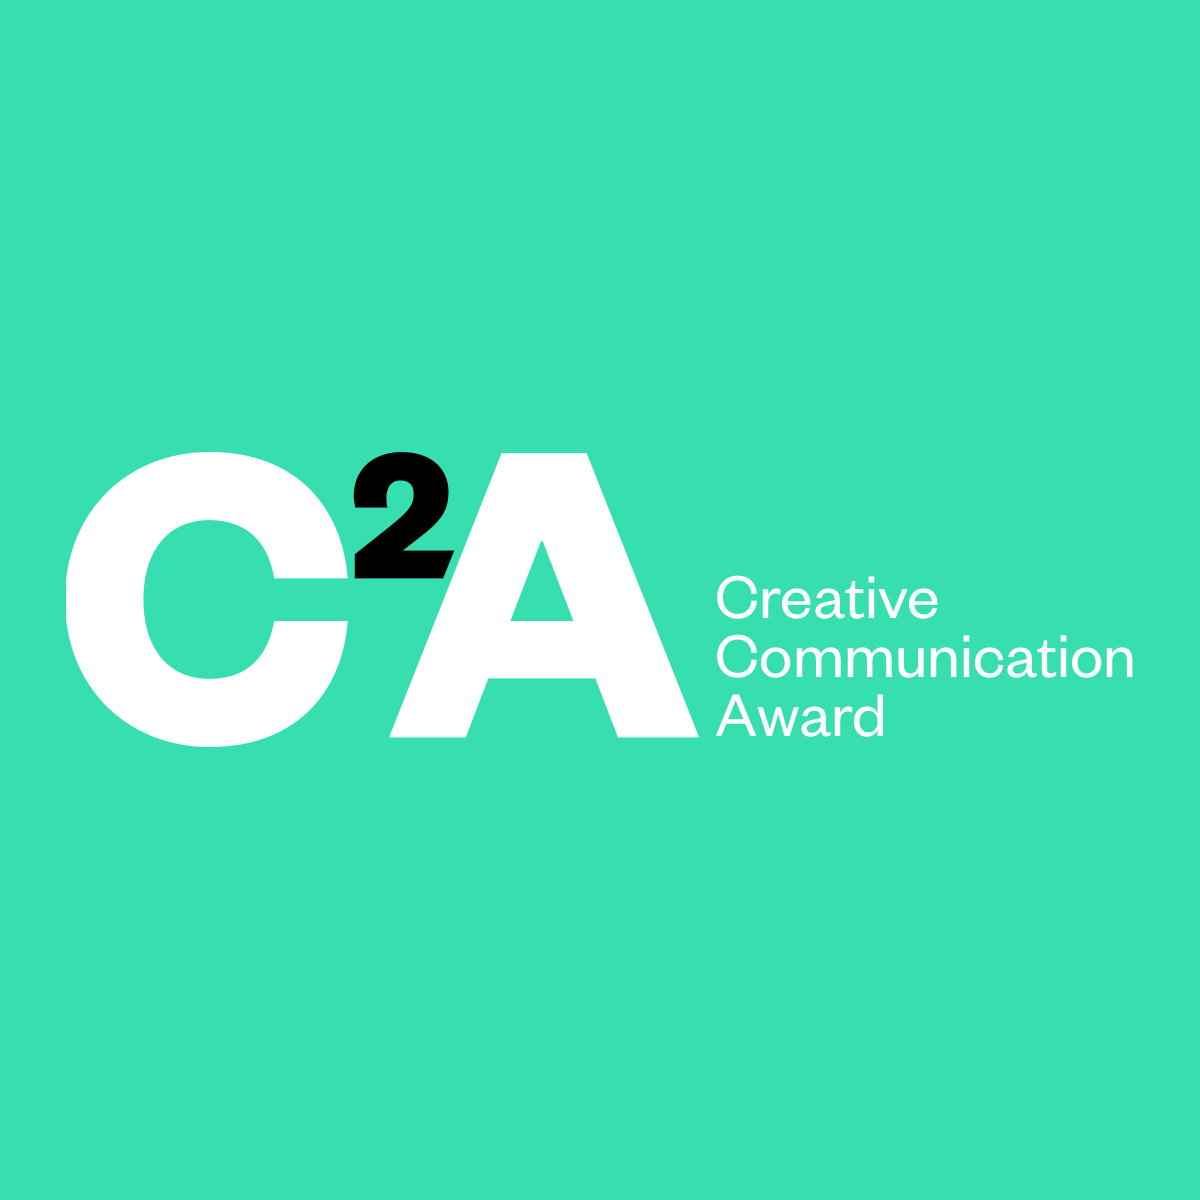 C2A Creative Communication Award